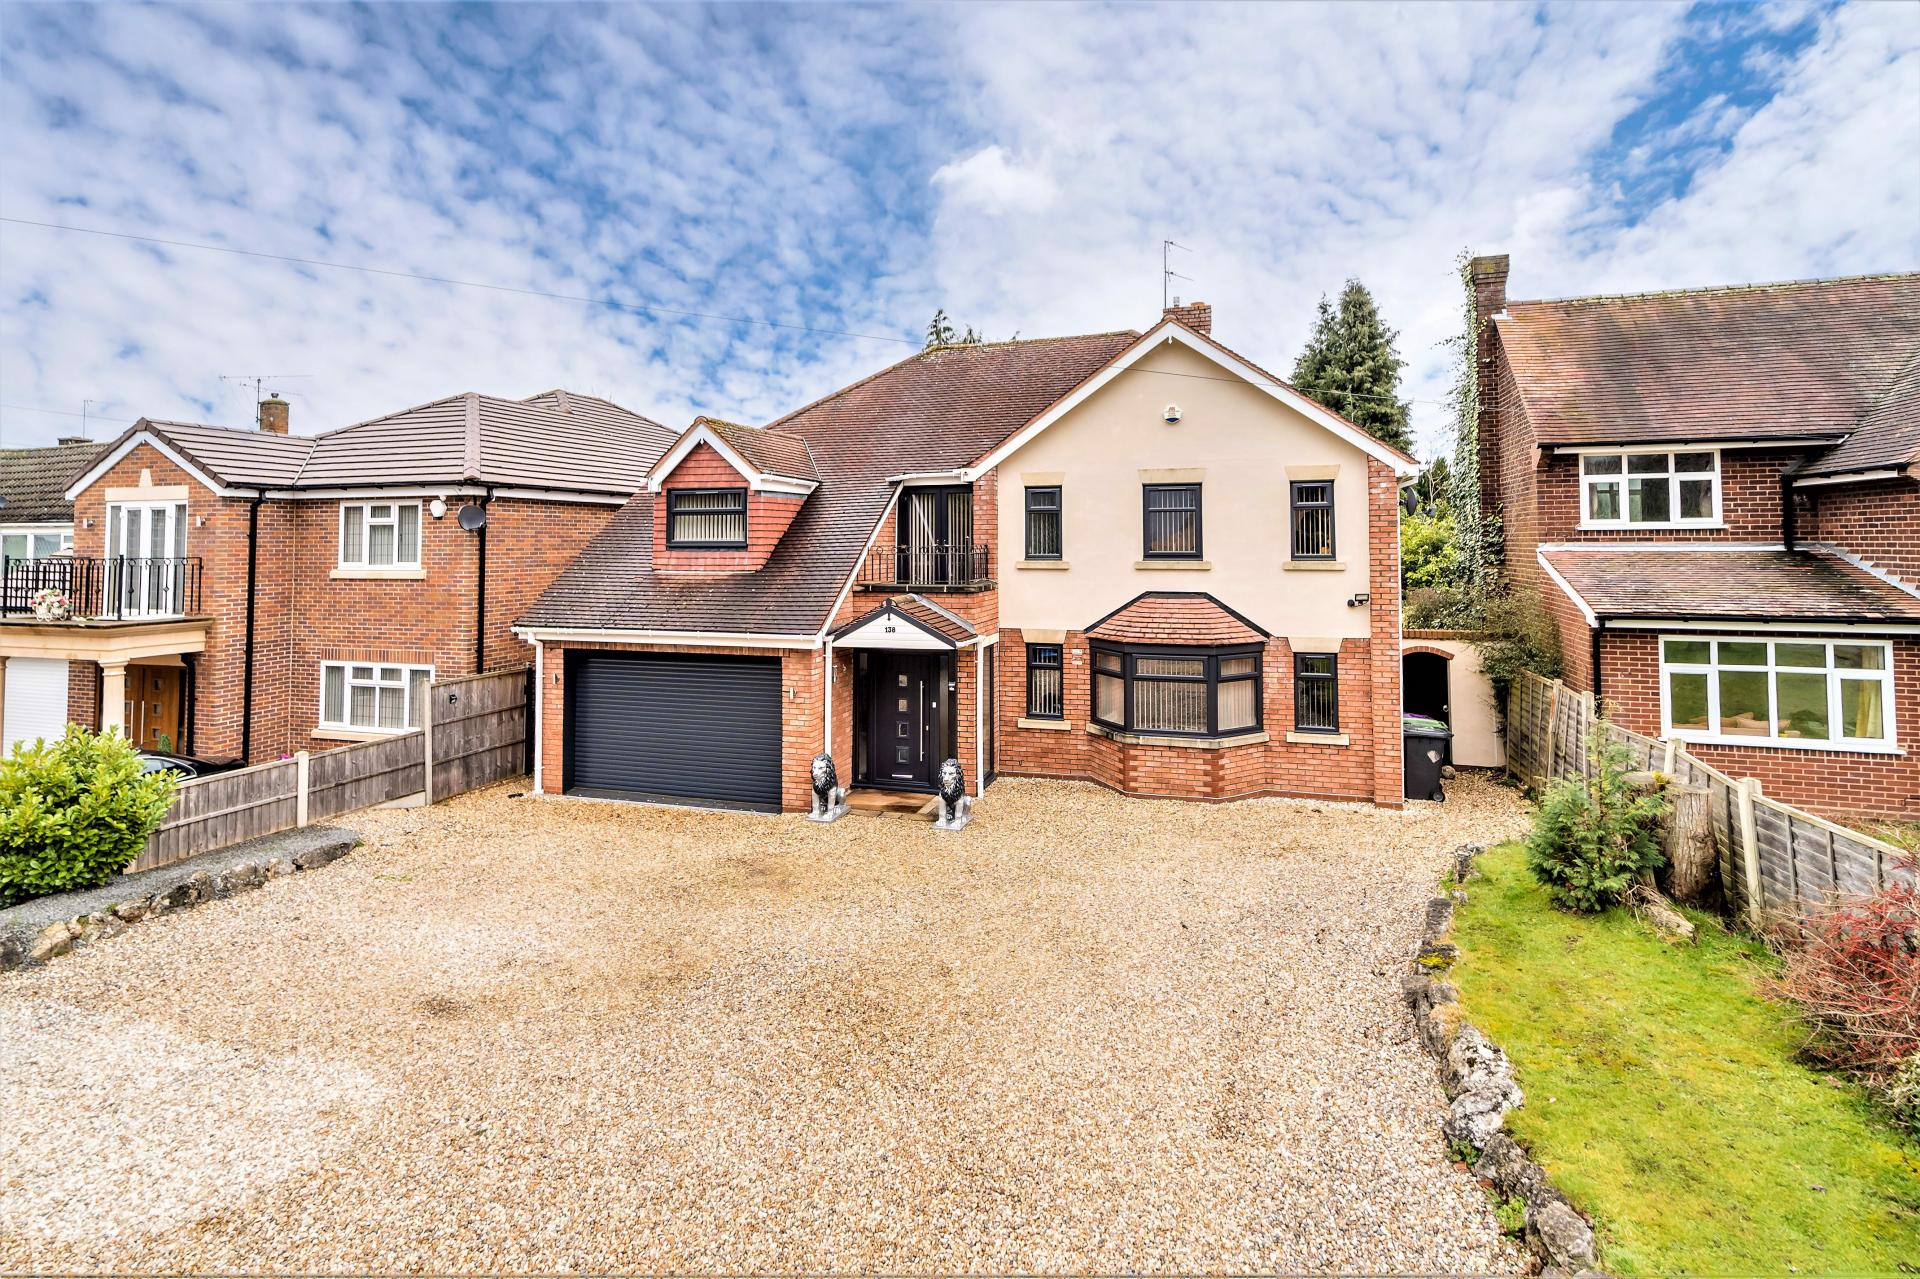 modernised large family home in Tettenhall village west midlands